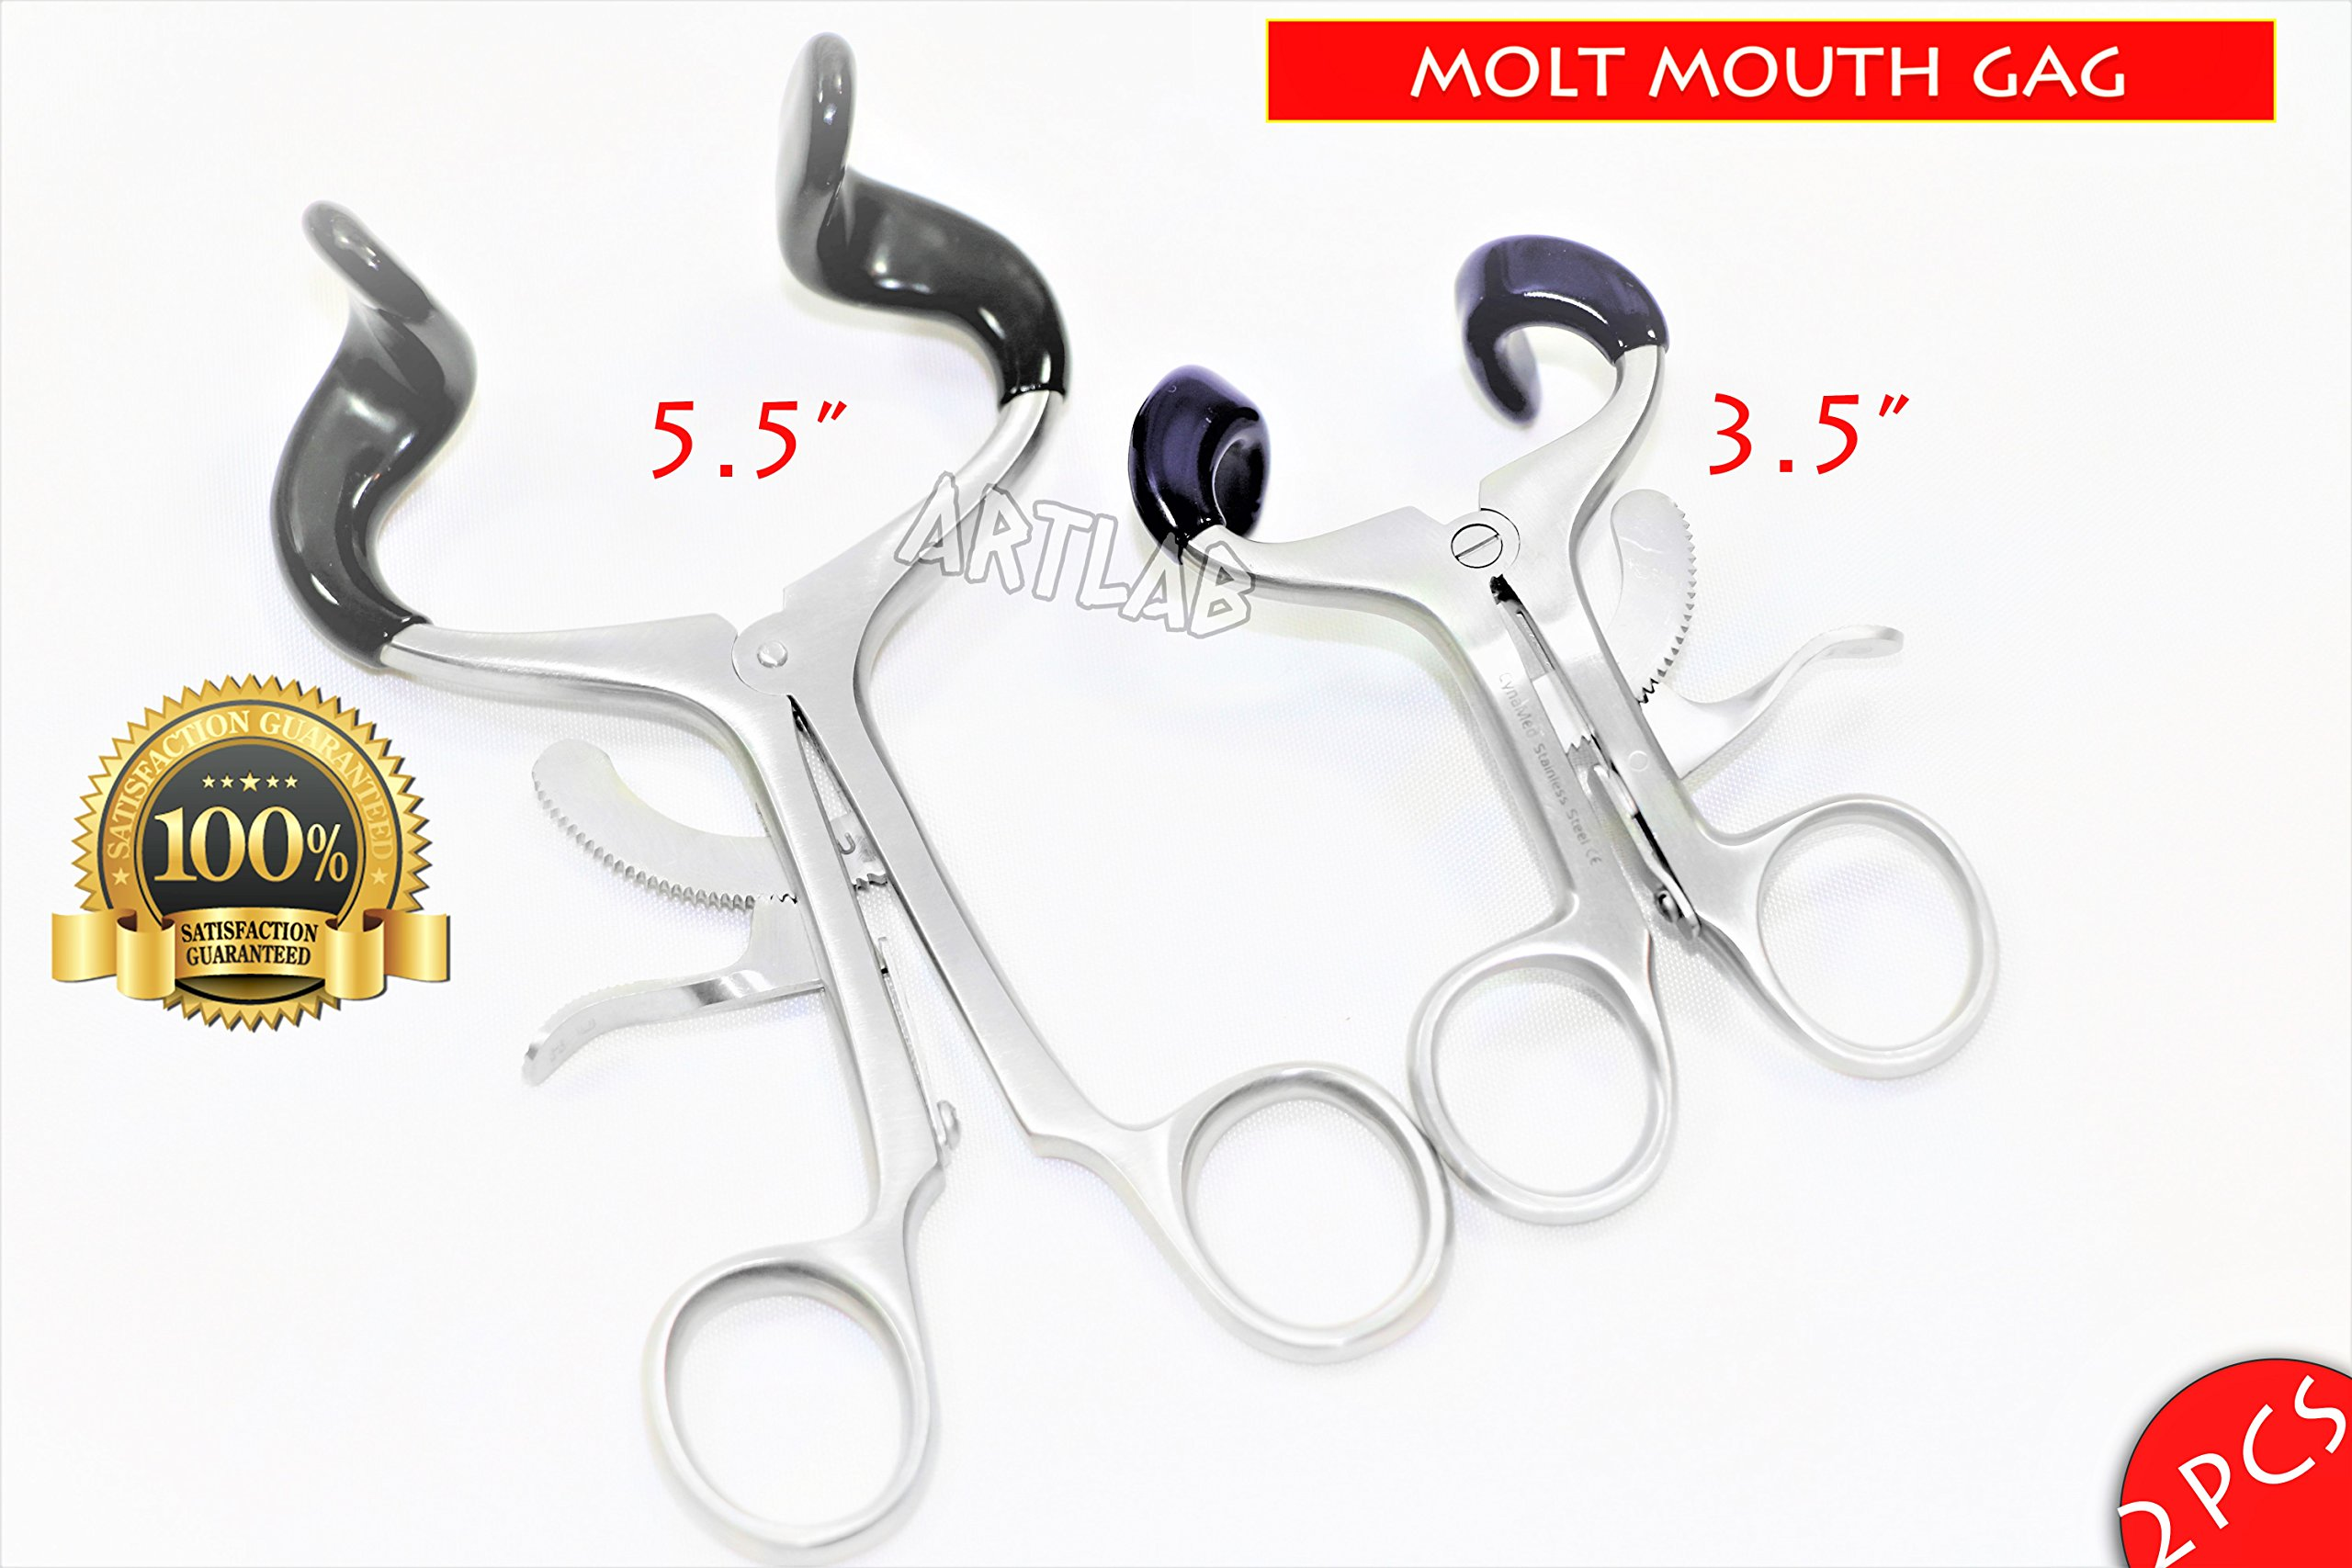 5.5'' + 3.5'' Molt Dental Mouth Gag with Silicone Tips Surgical Dental Oral Instrument (CYNAMED)